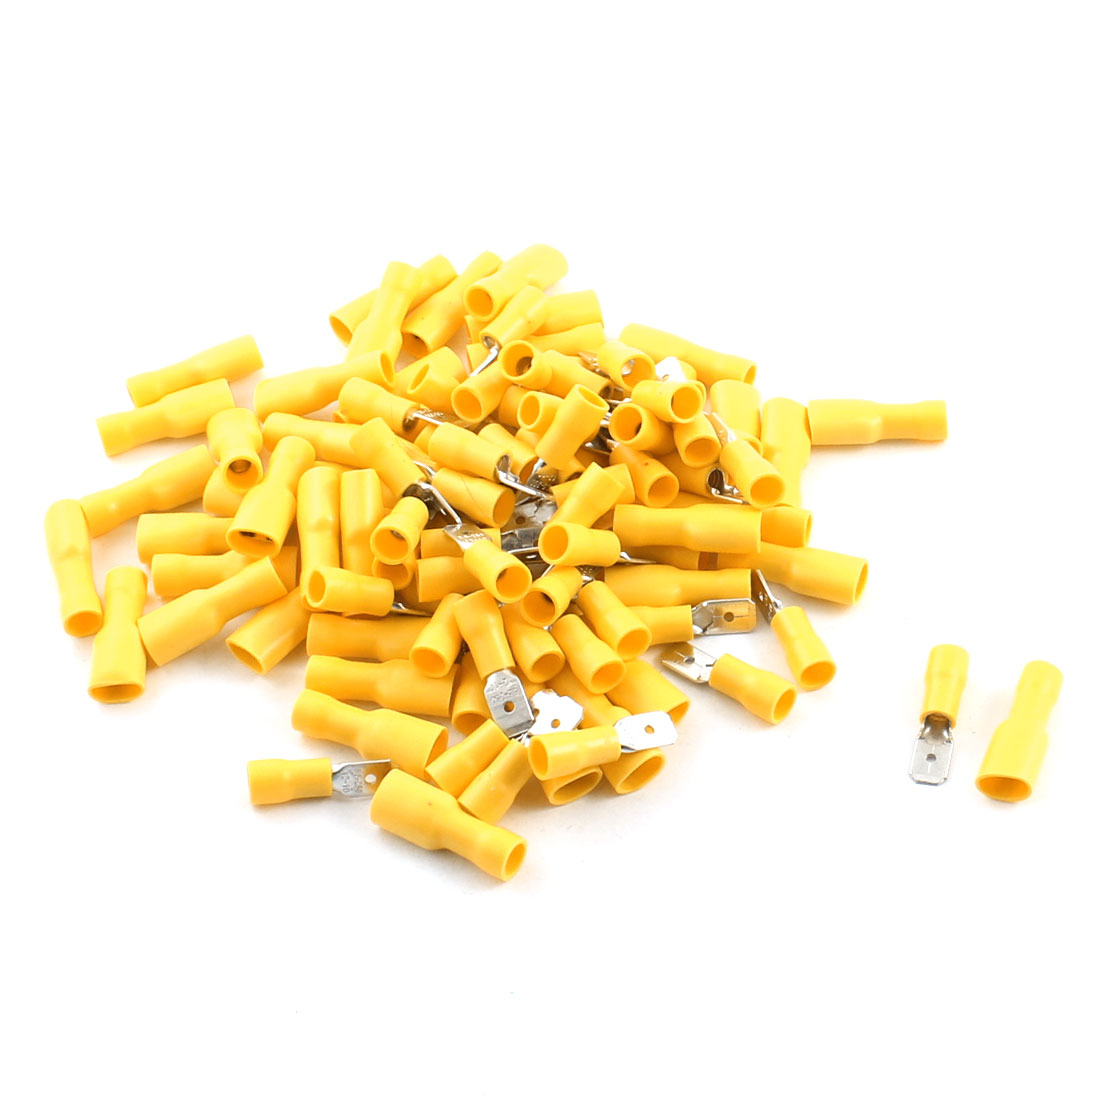 100Pcs Yellow Male Female Insulated Spade Crimp Terminals for AWG 12-10 Cable